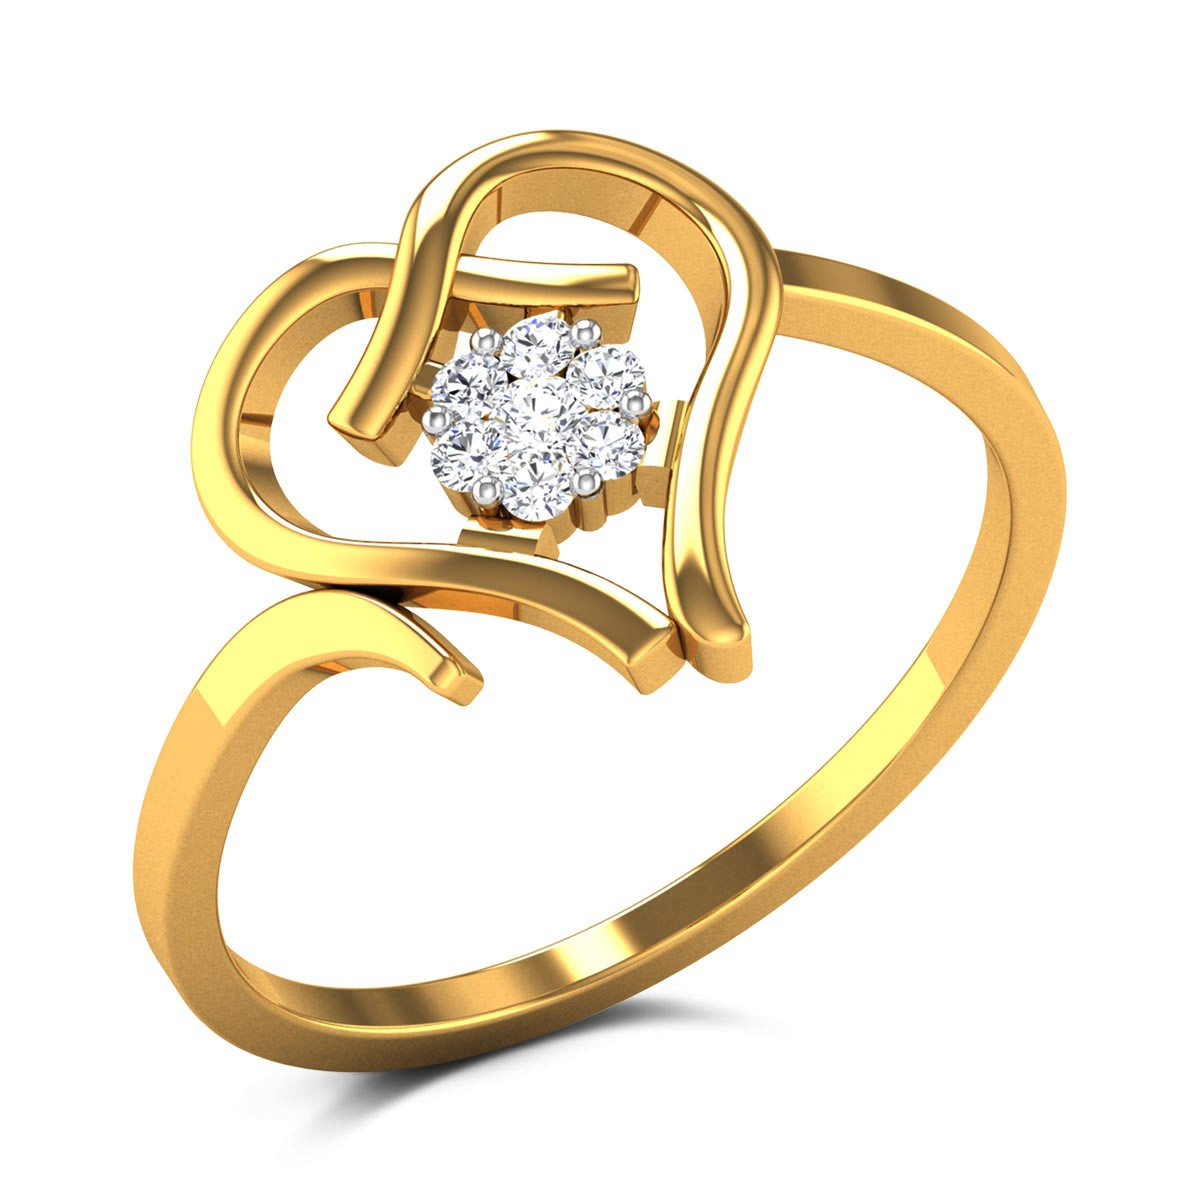 Buy Shianne Hearts Diamond Ring in 2.76 Grams Gold Online